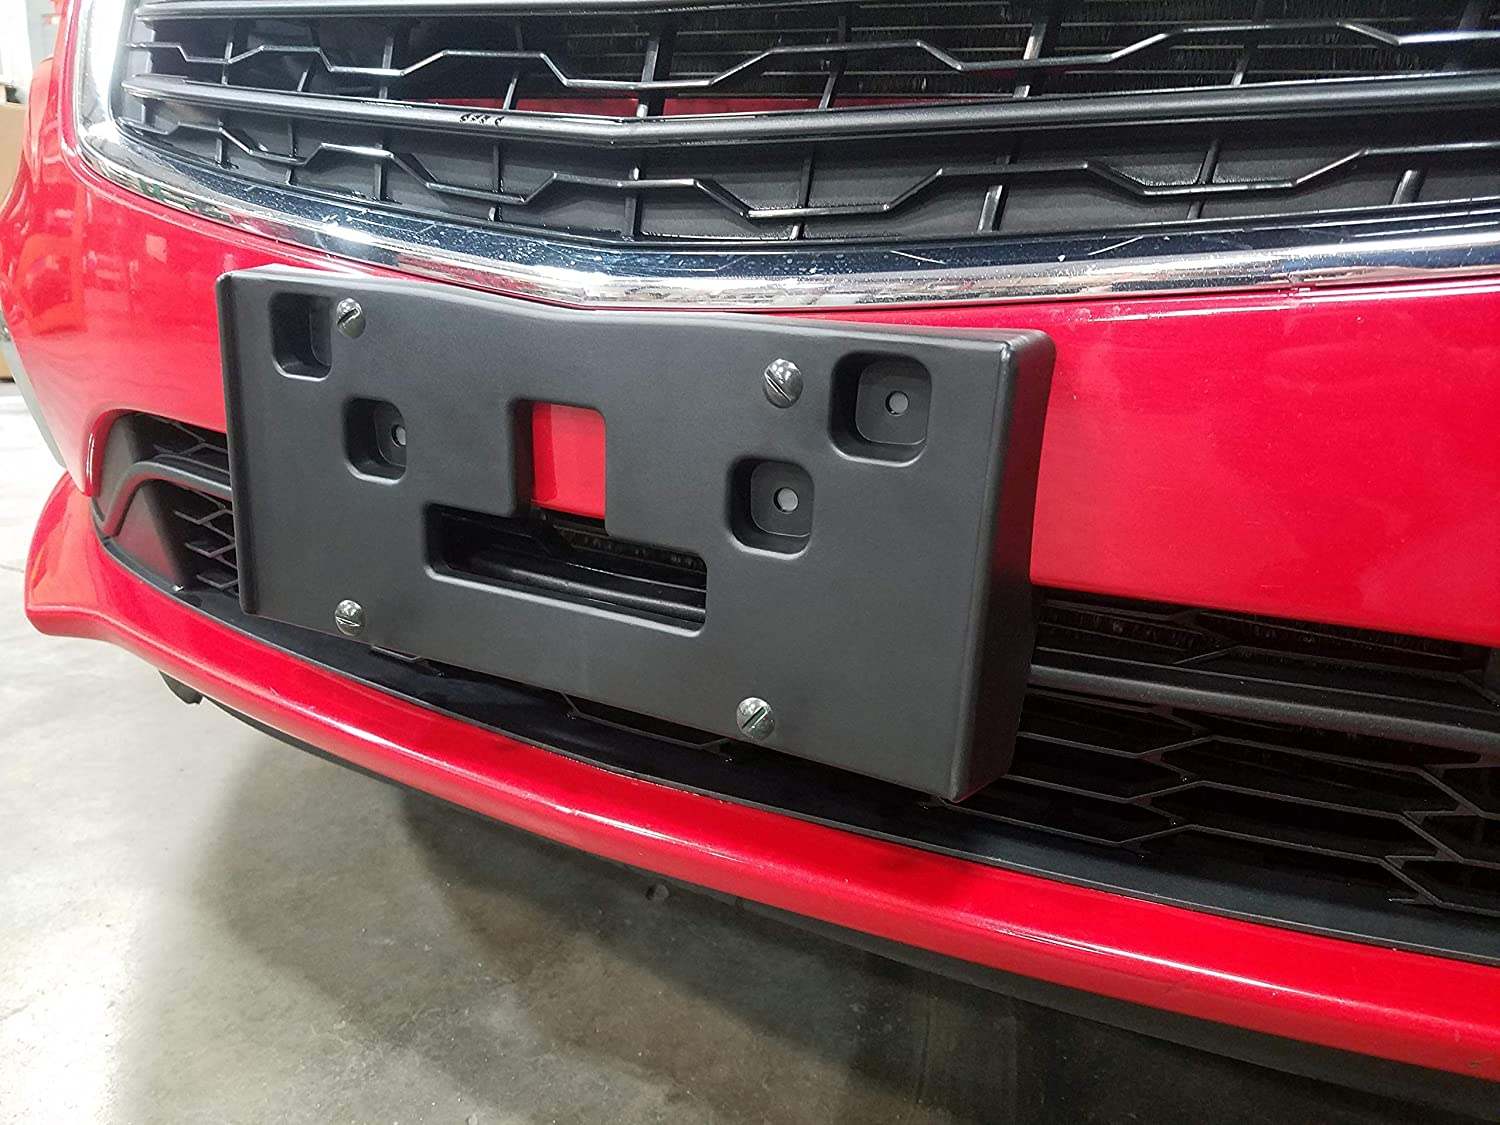 Red Hound Auto Front License Plate Bumper Mounting Bracket Compatible with Chevrolet Cruze 2015-2016 Includes Screws and Mounting Hardware